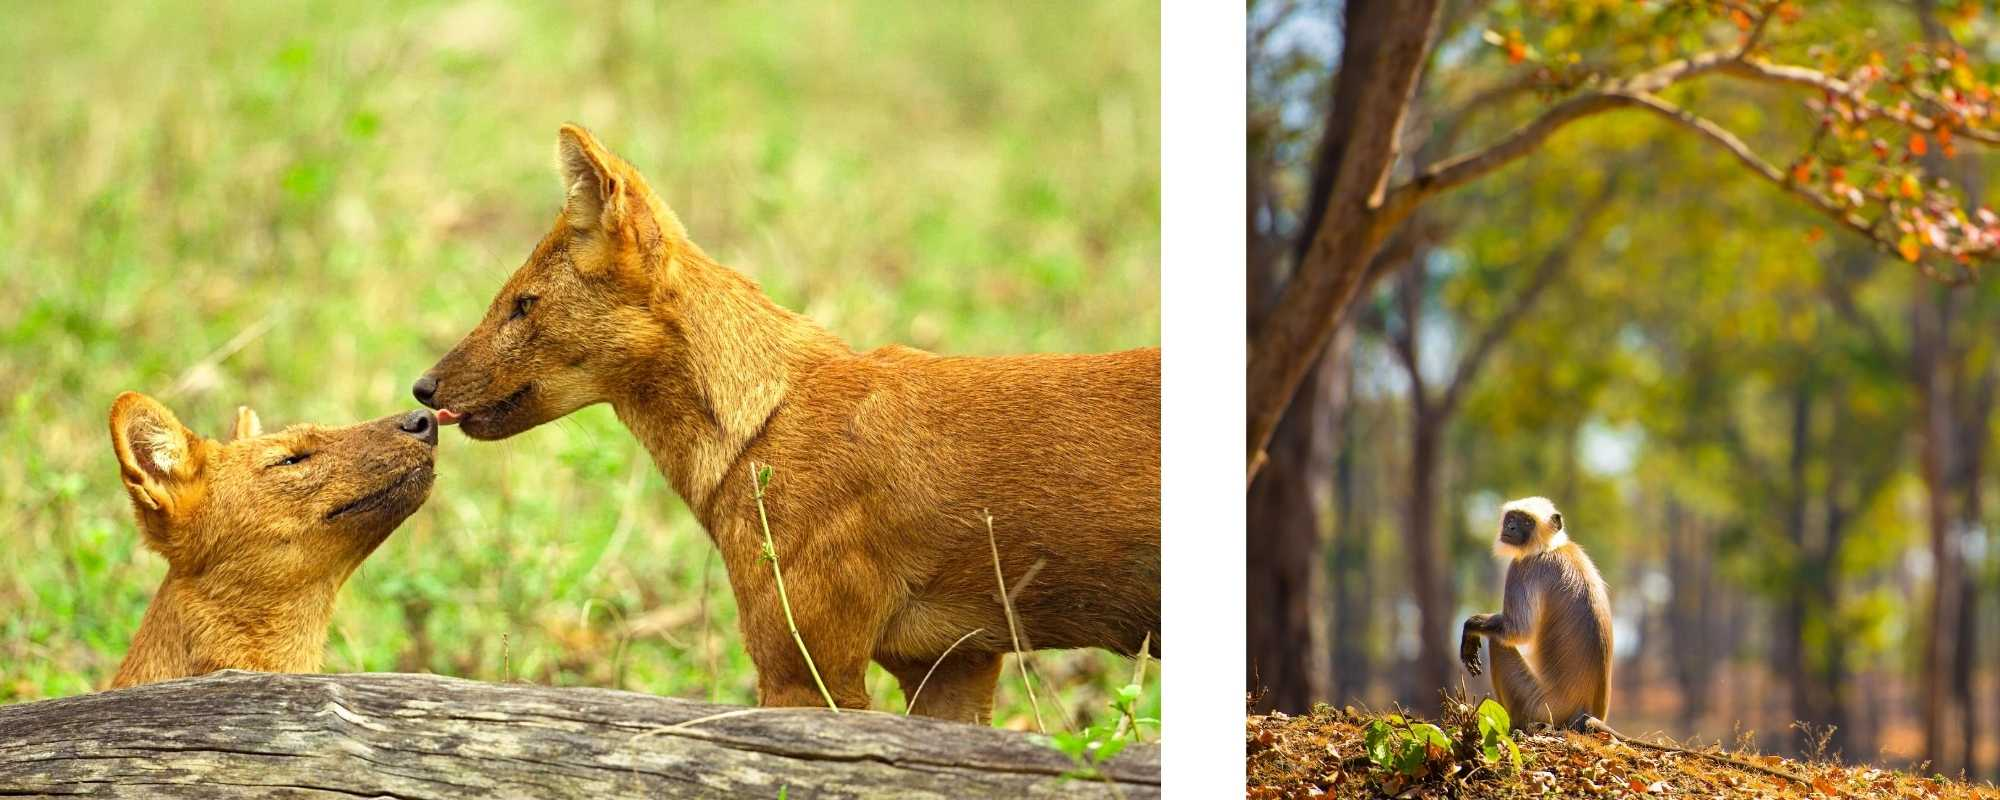 Dhole and Langur Monkey by Shannon Wild, India